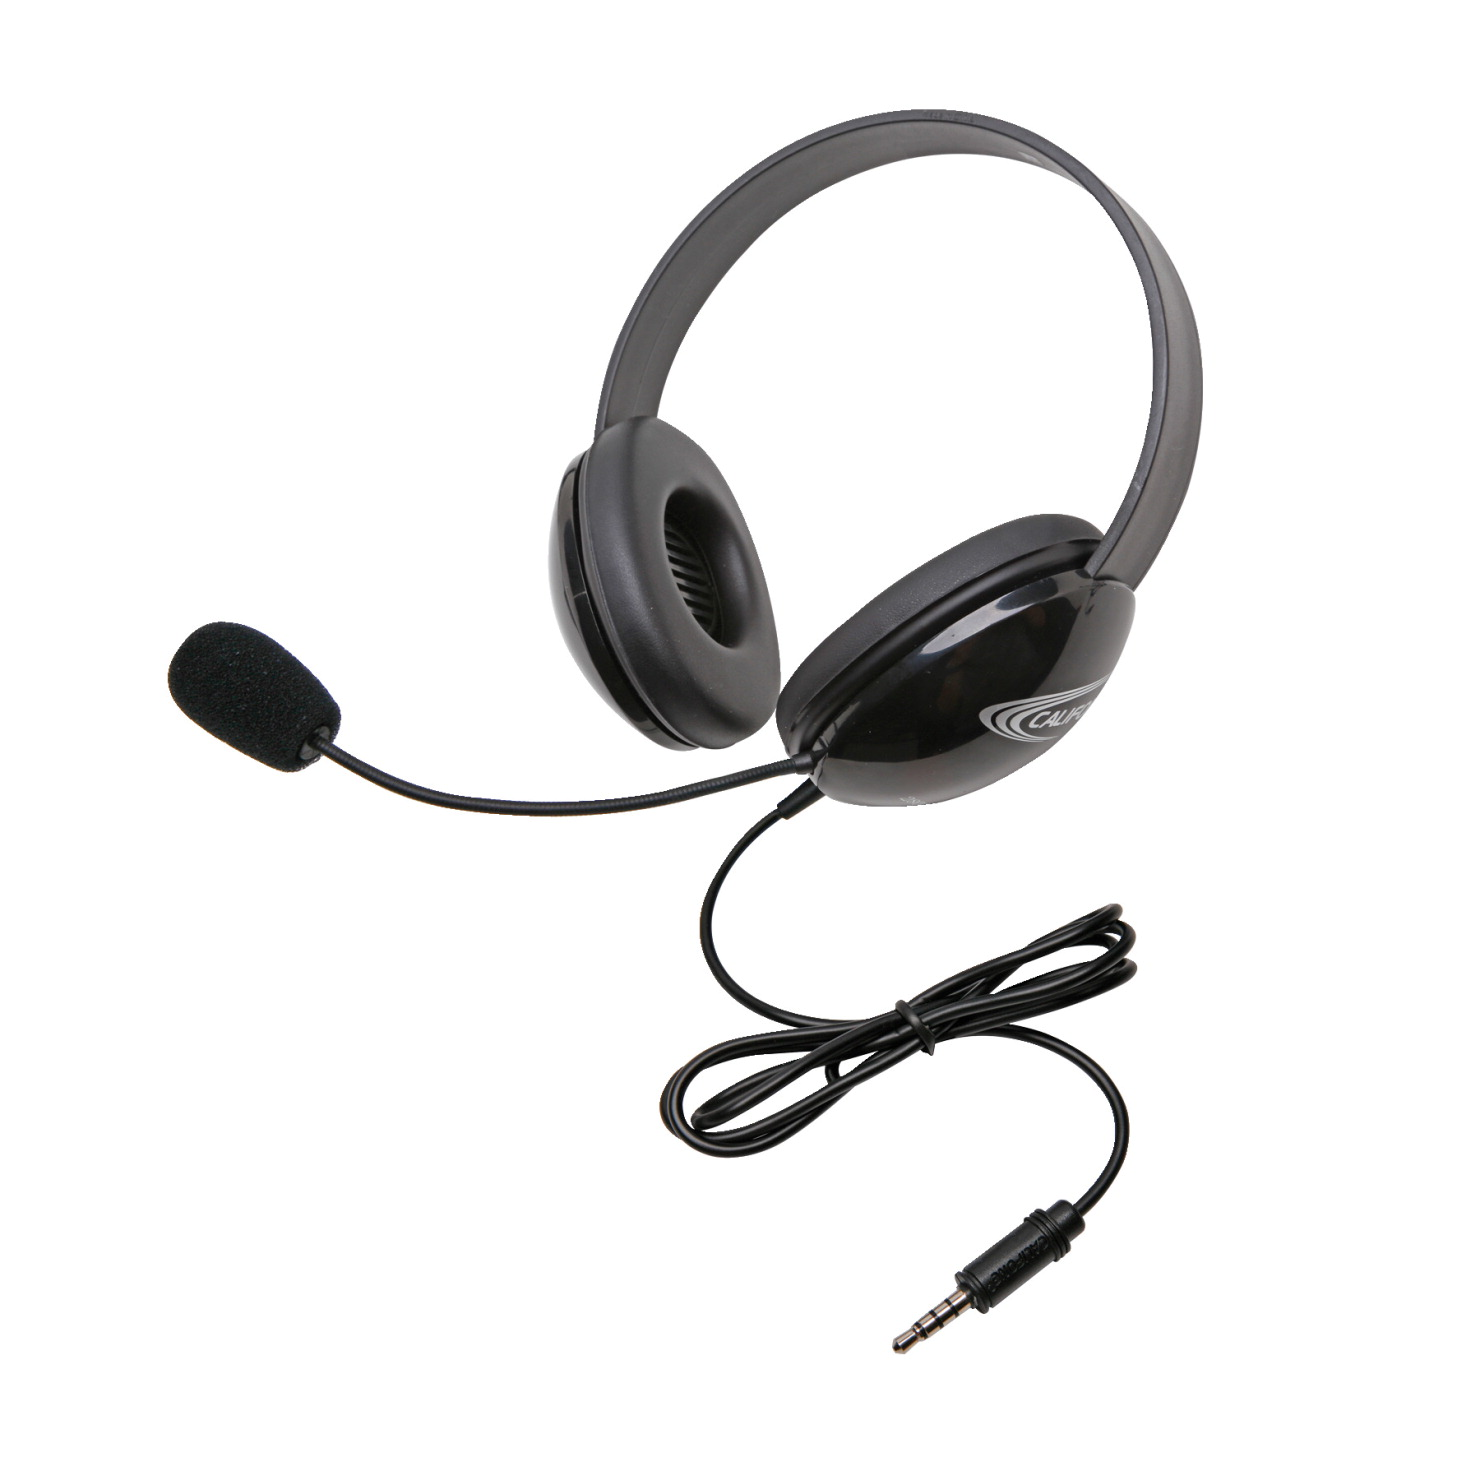 Califone 2800TBK Listening First Stereo Headphones with 3.5mm Plug, Black